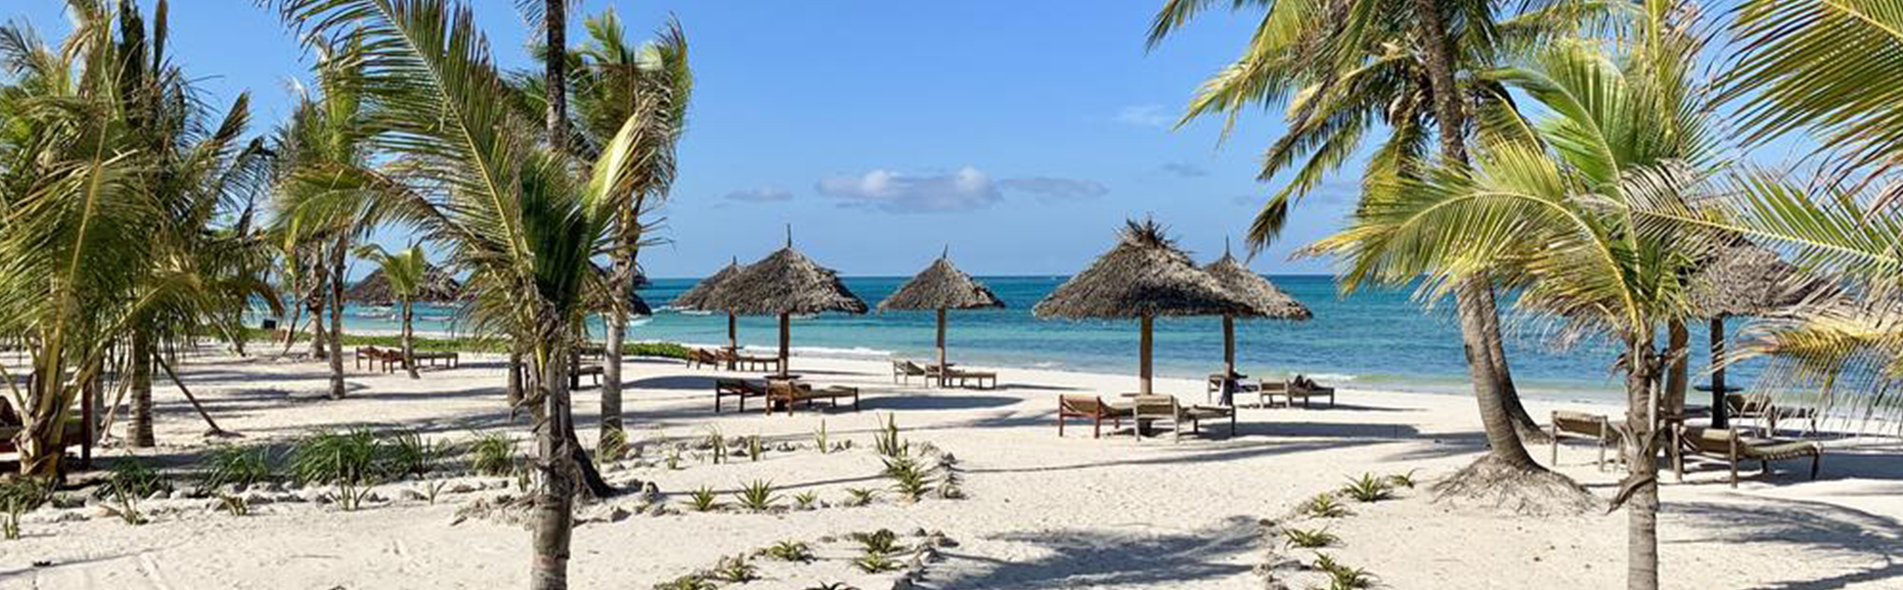 The Sands Beach Resort, Tanzania